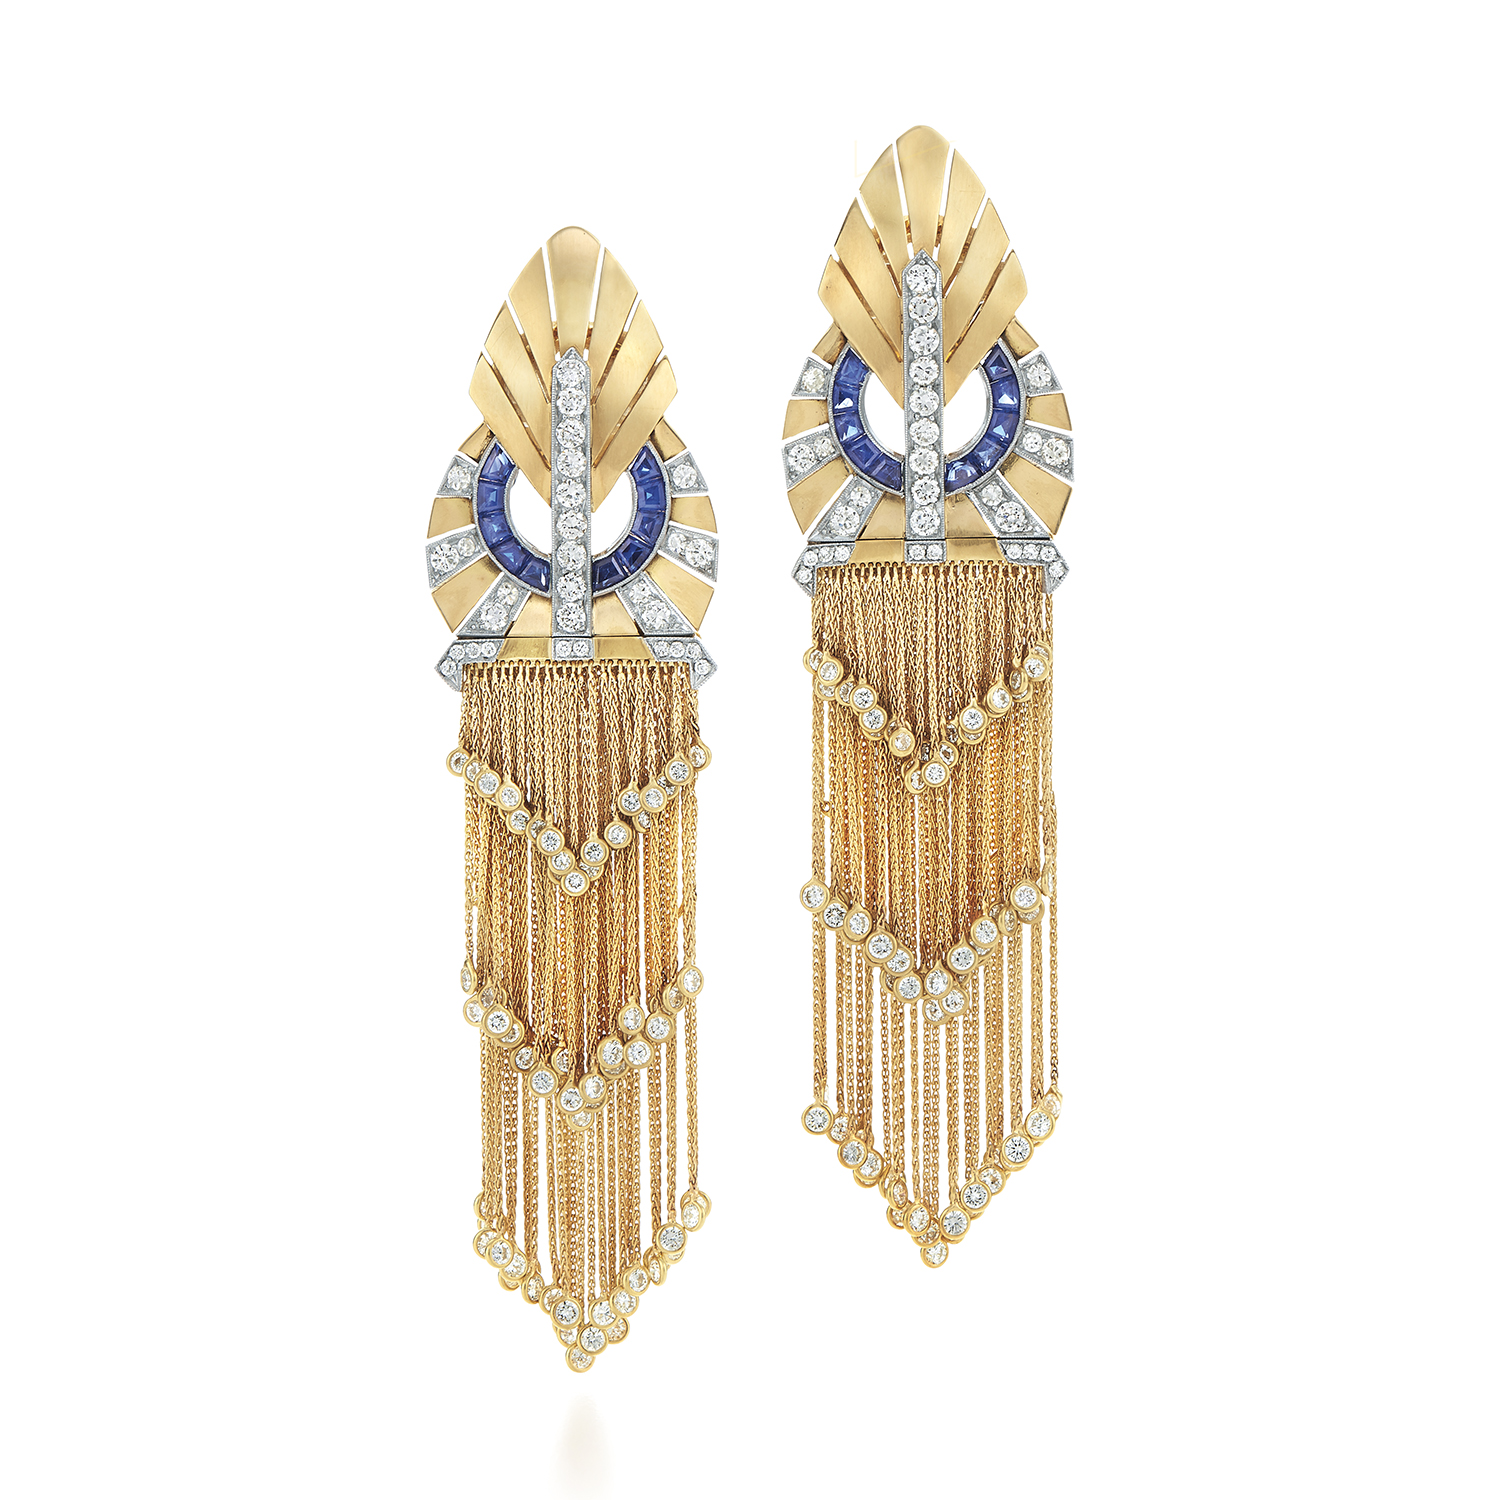 Signed Fred Leigton Diamond and Sapphire Dress Clip Earrings in Yellow Gold E-34494-FL-0-0